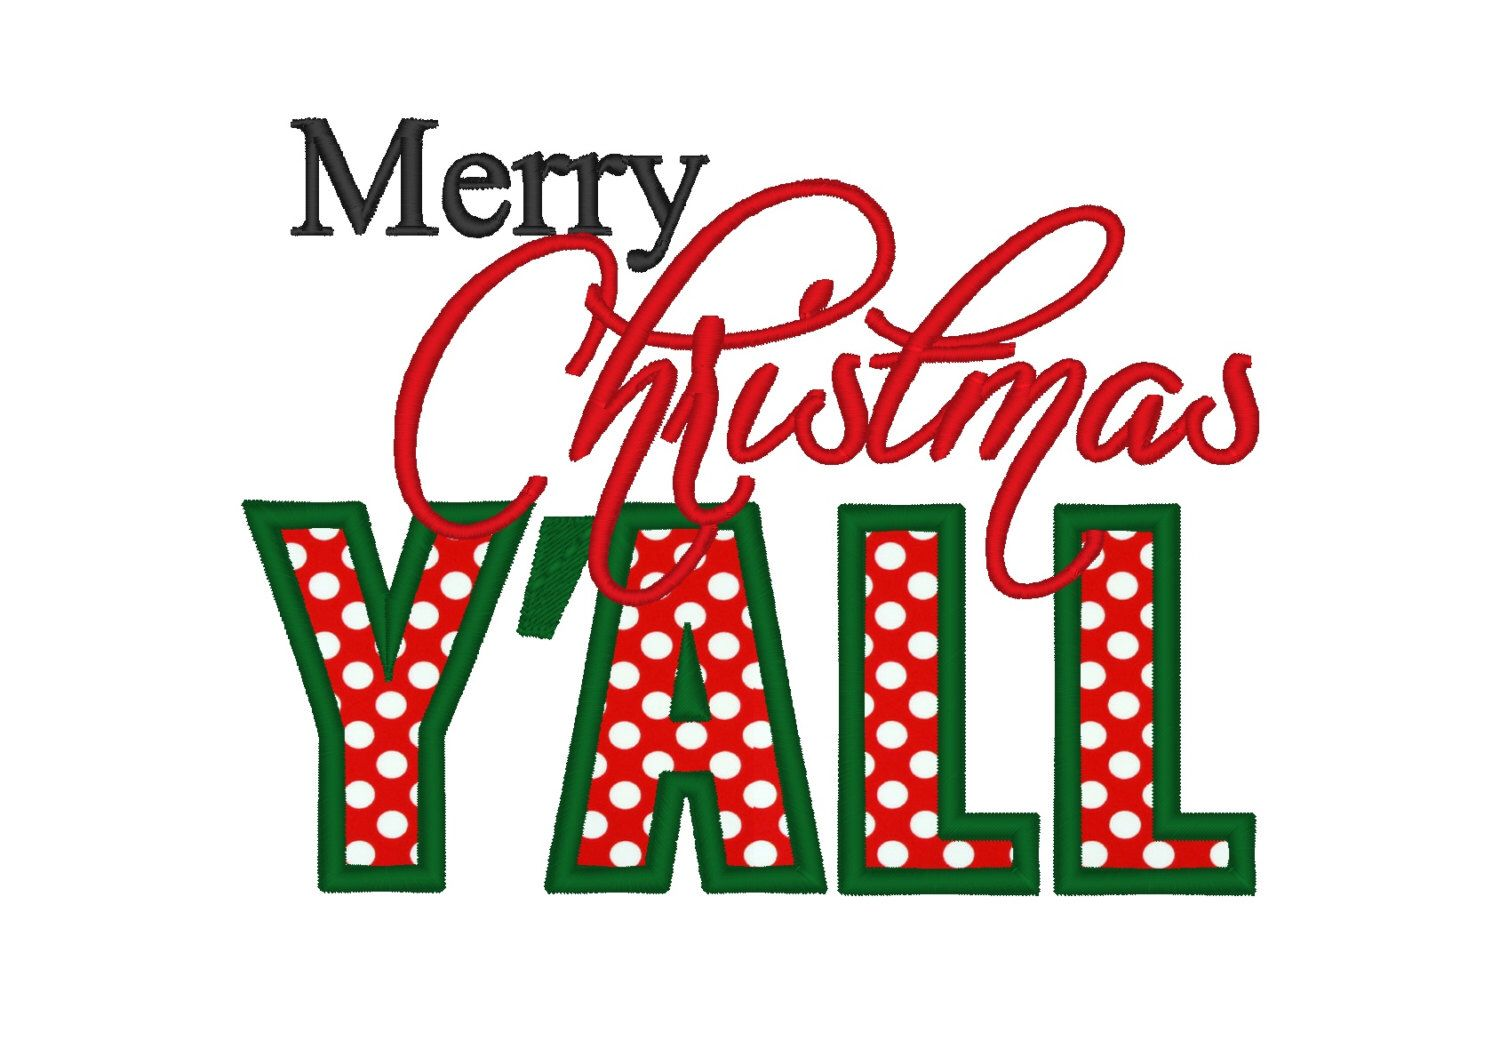 merry christmas yall applique instant download machine embroidery design digitized file 4x4